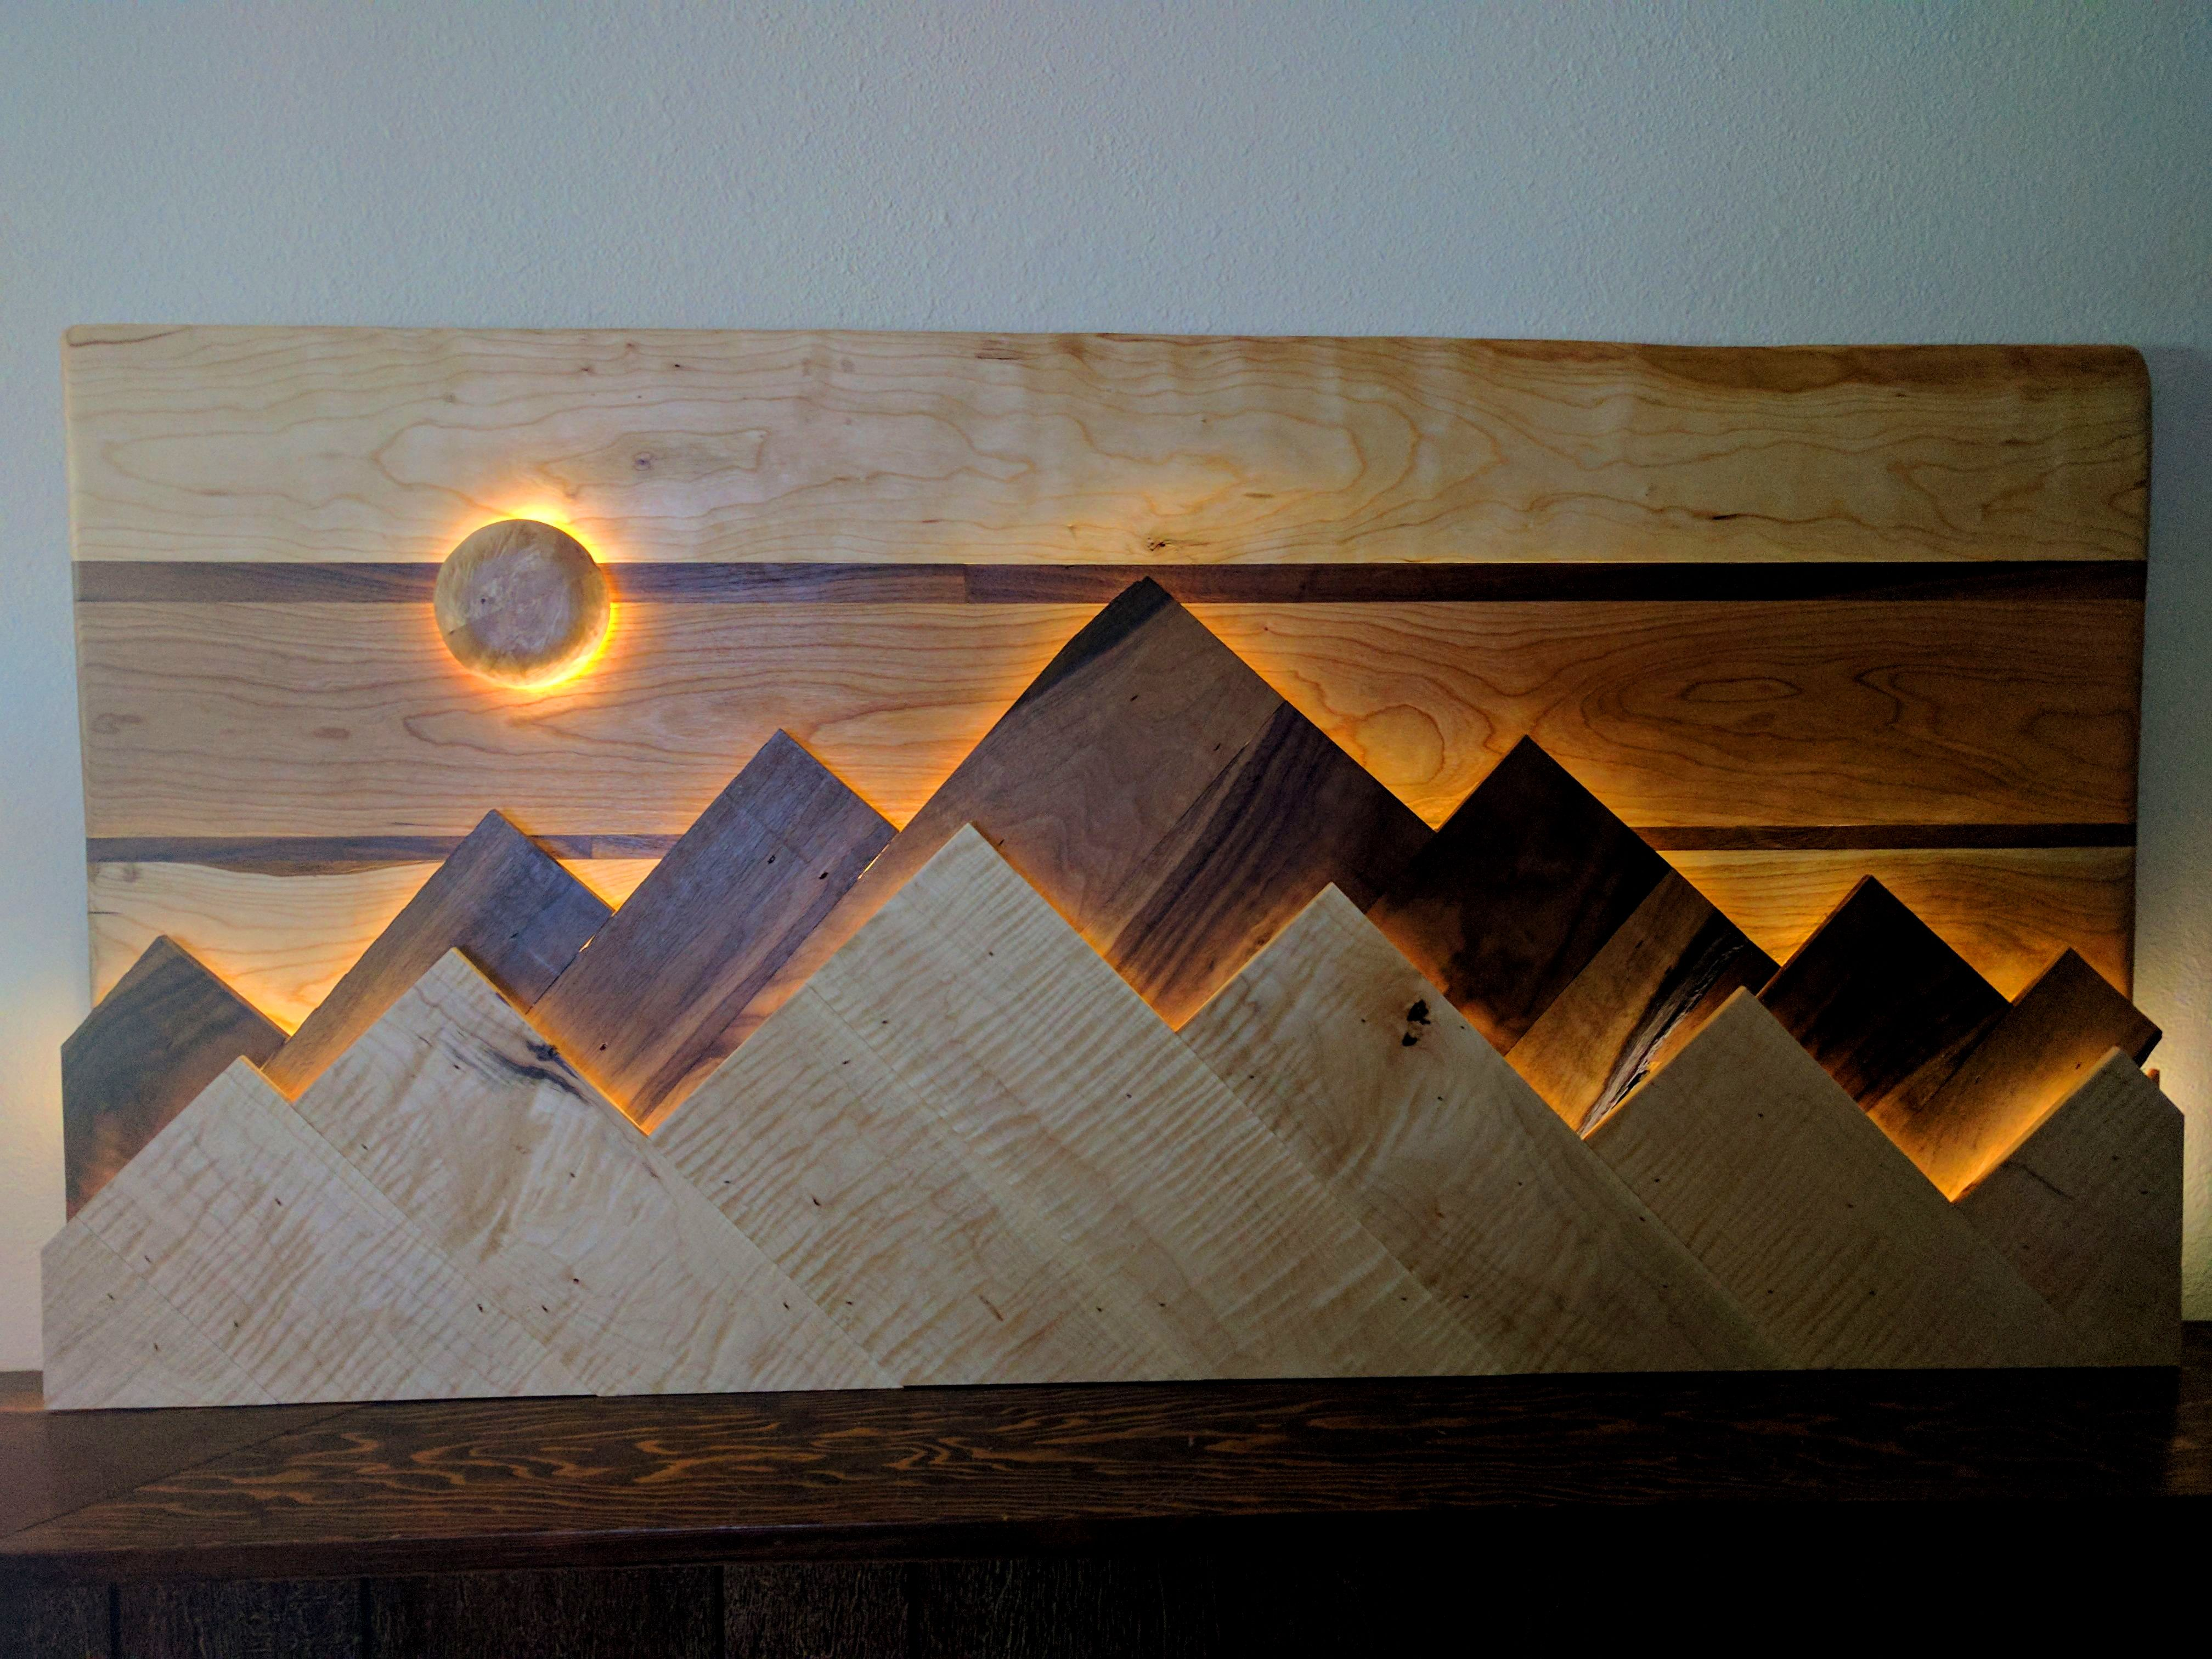 Backlit Wood Wall Google Search Wooden Wall Decor Diy Wall Art Wooden Wall Art